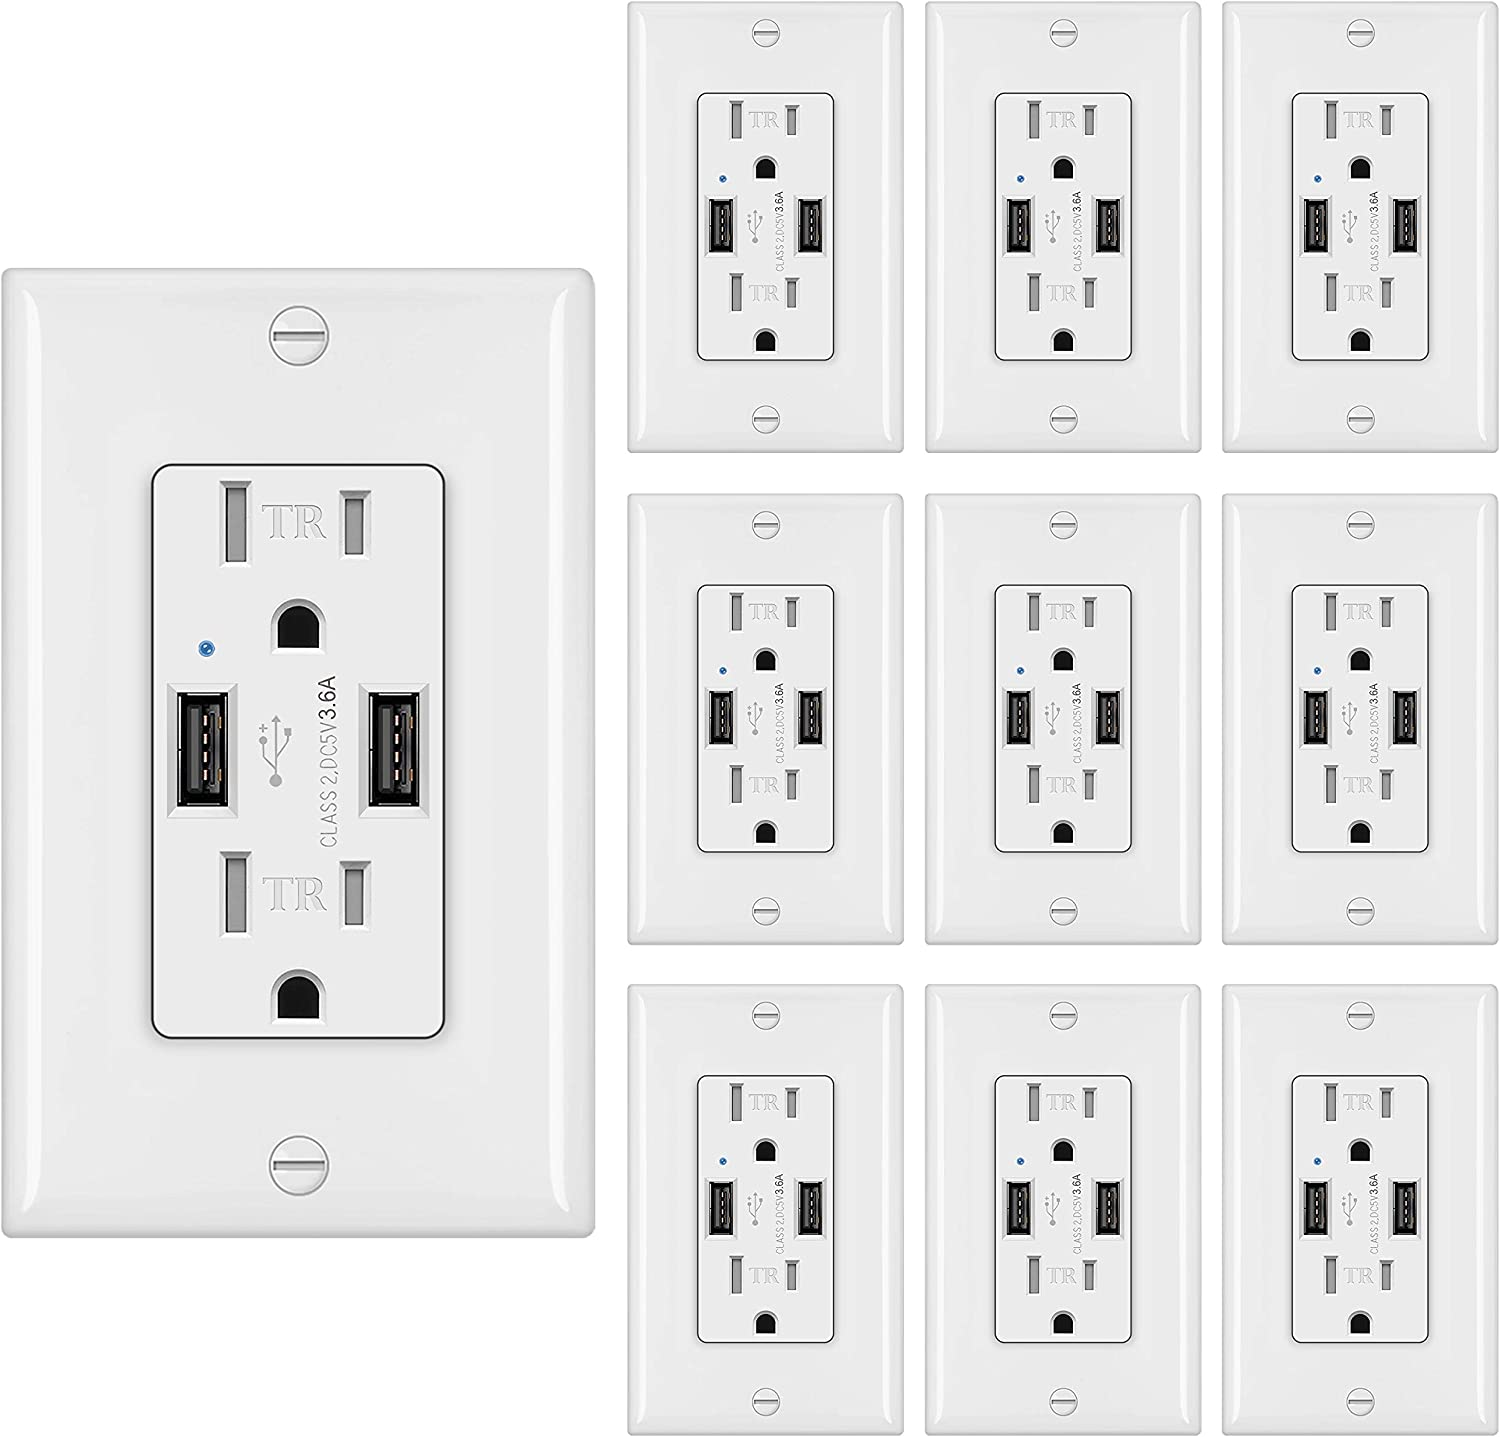 [10 Pack] BESTTEN 3.6A Dual USB Wall Outlet, 15A/125V/1875W, Tamper Resistant Receptacle, Ideal to Charge Smartphone, Tablet and Other USB Device, UL Listed, White